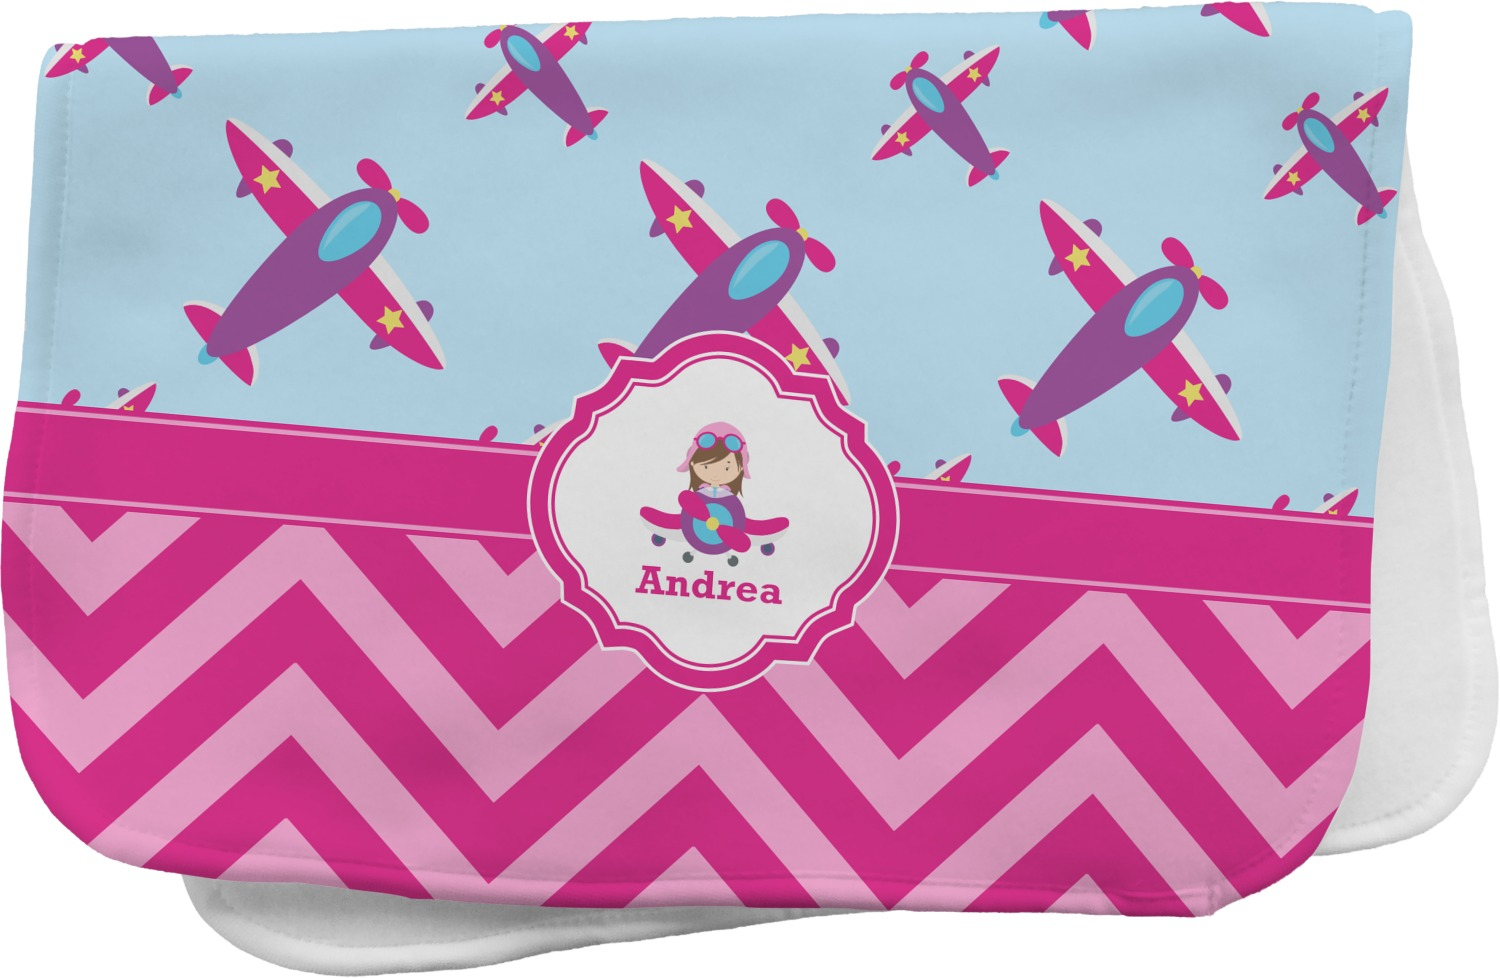 Airplane Theme For Girls Burp Cloth Personalized